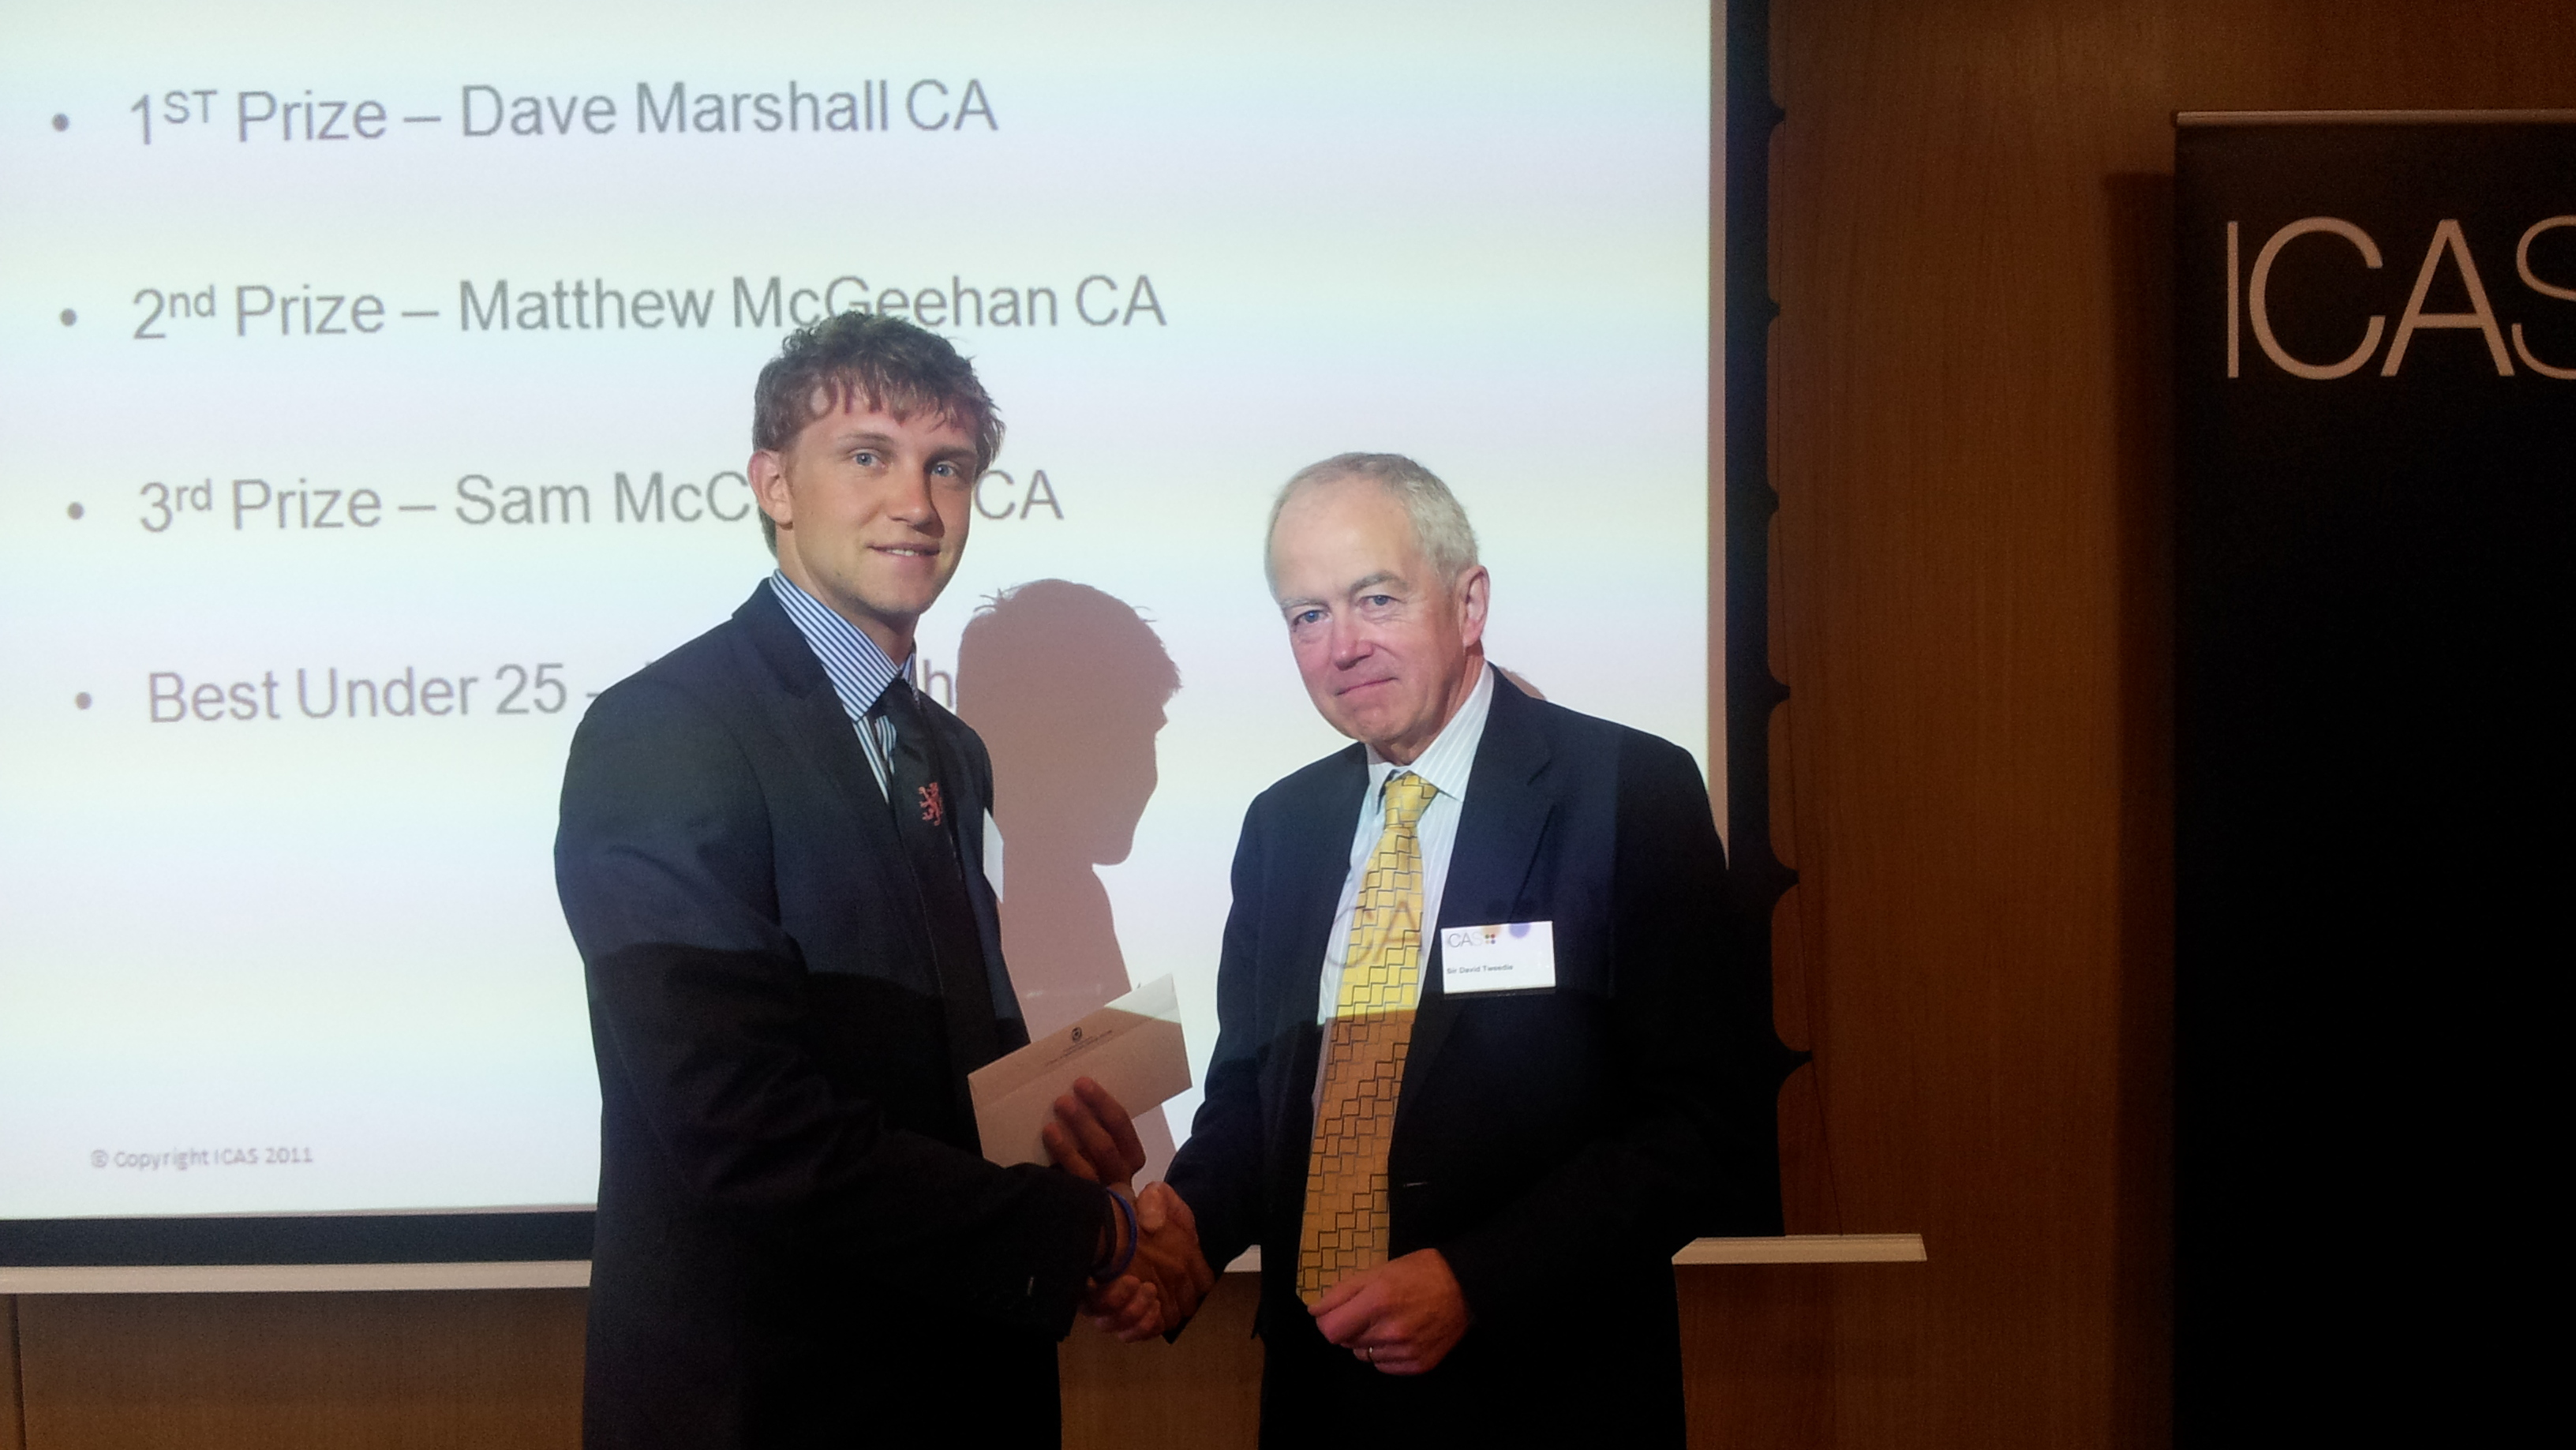 The Role Of Accountants In Measuring Environmental Sustainability Daniel Johnson Winner In The Under  Category In The  ICAS Sustainability Essay Prize Receives His Prize From ICAS President Sir David Tweedie The Role Of Accountants In Measuring Environmental Sustainability